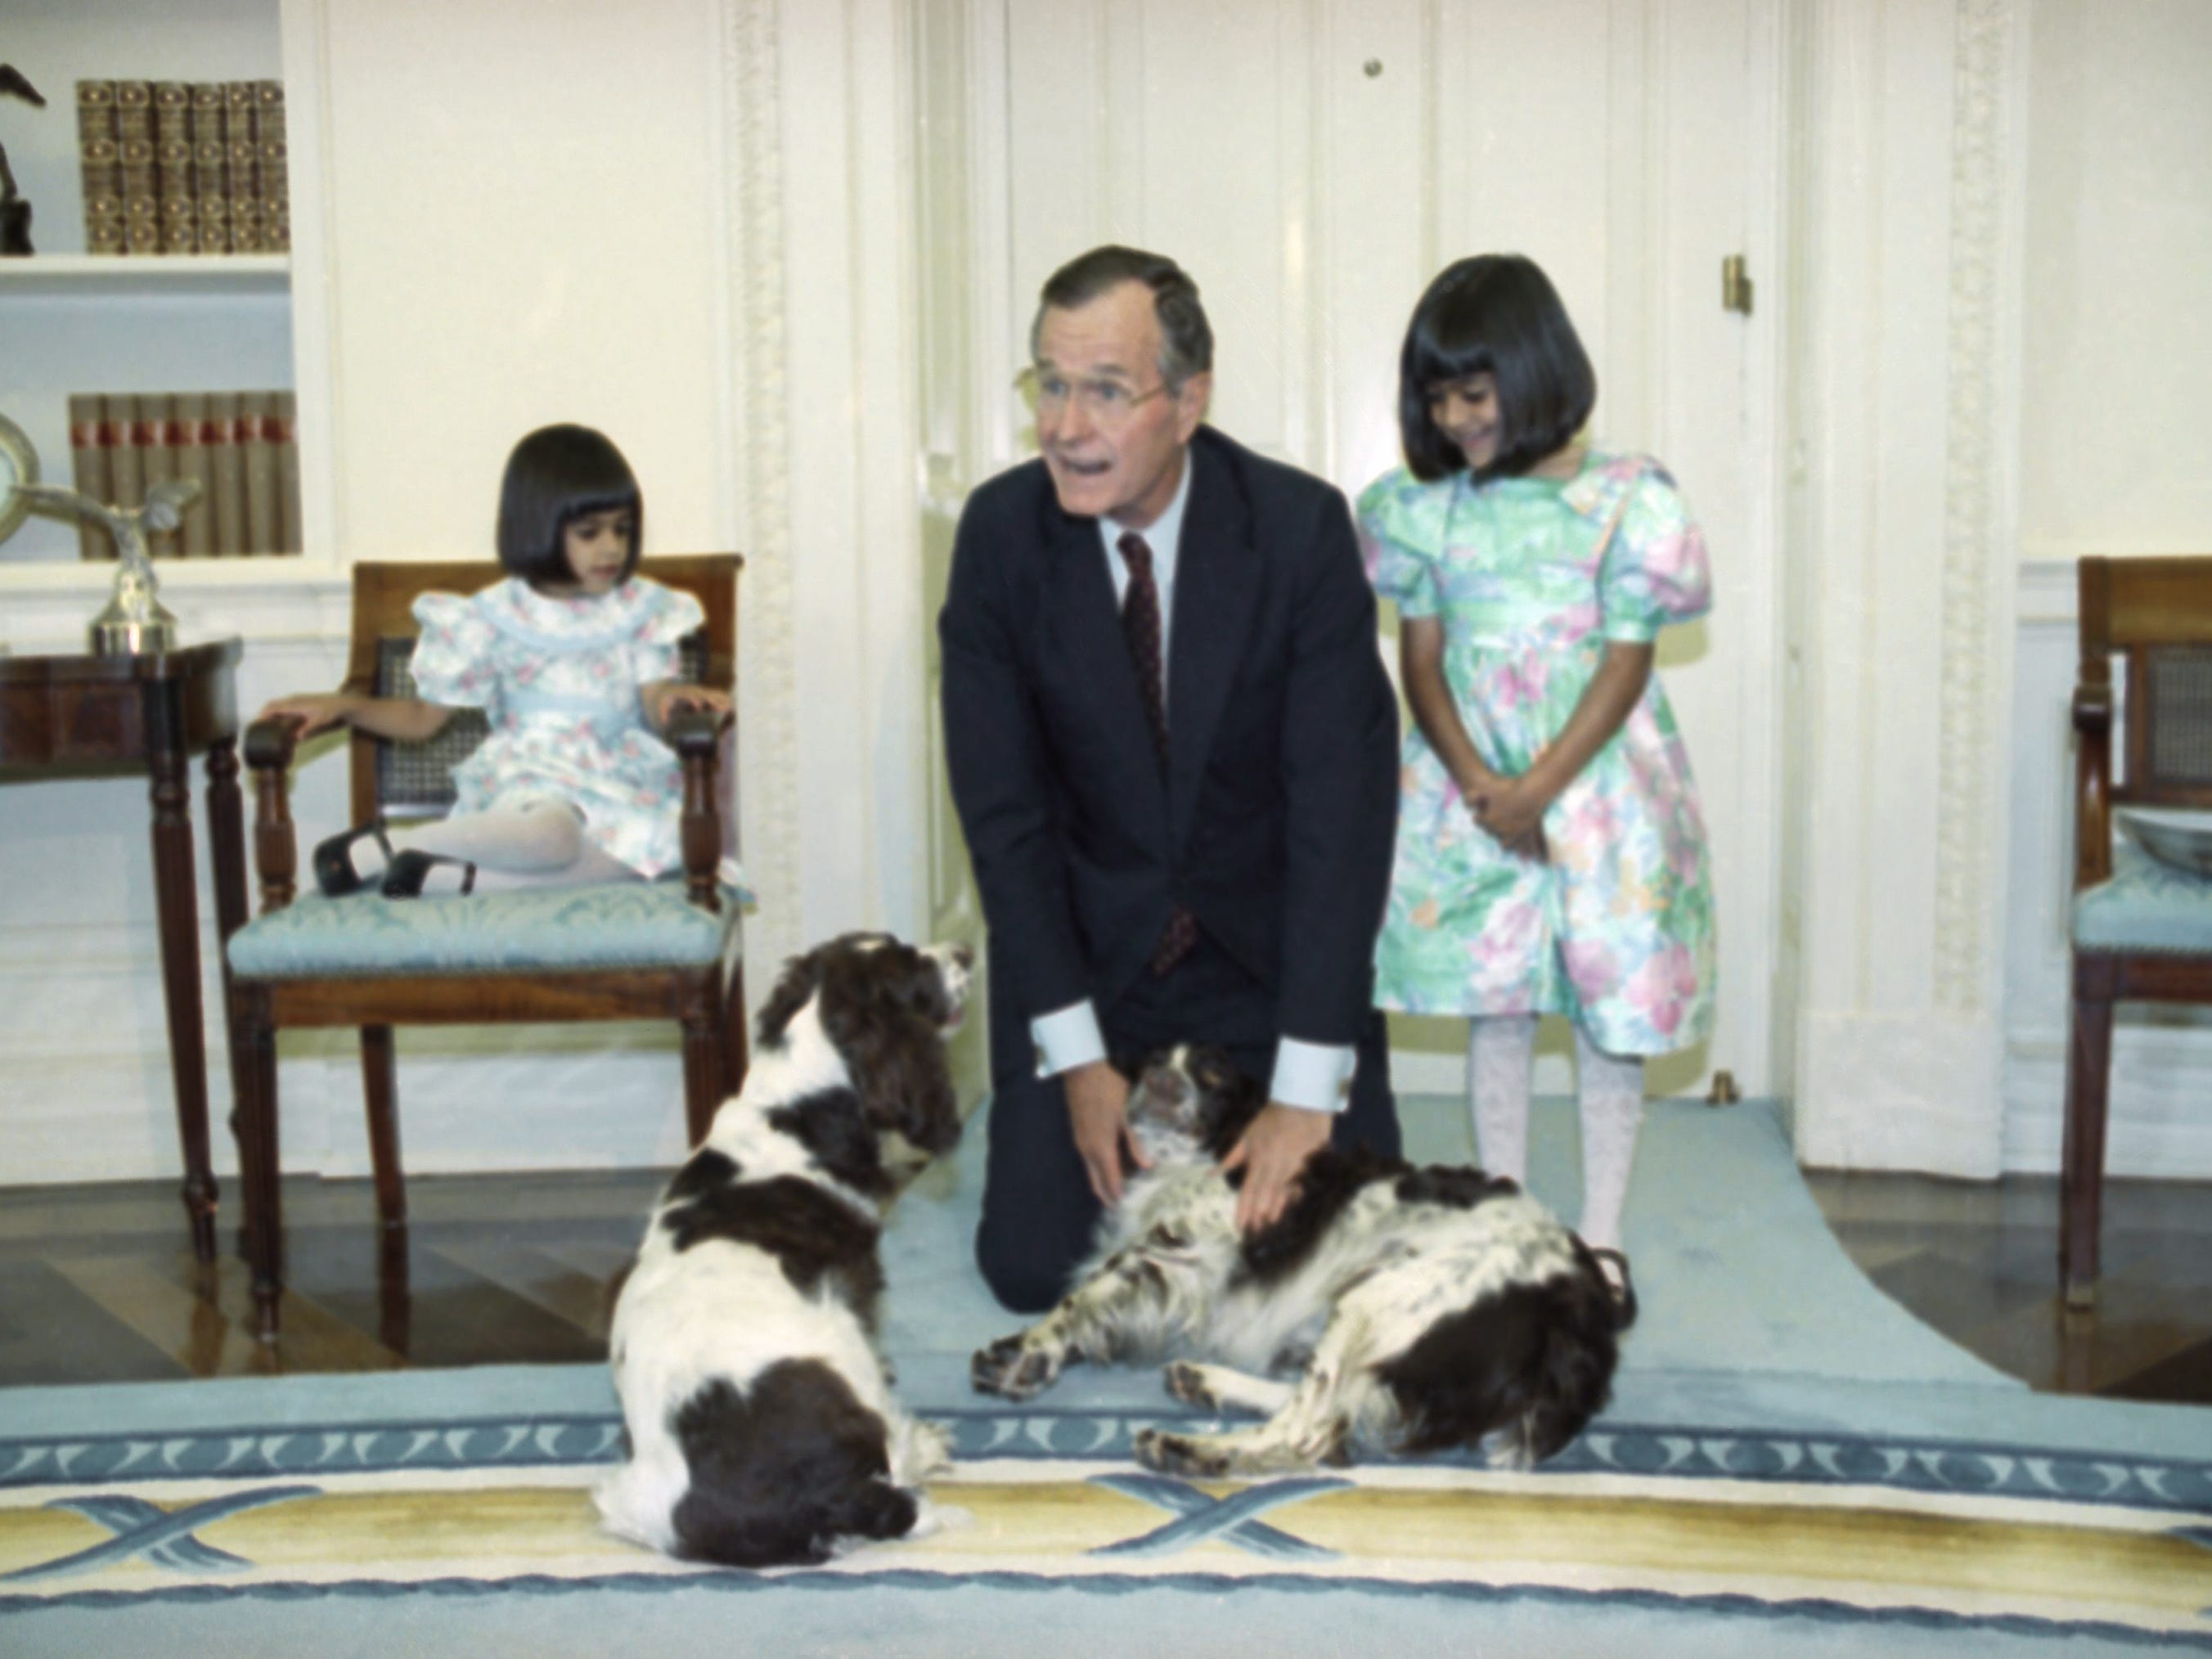 President George Bush gets down on his knees to show off his dogs, Millie and Ranger, May 2, 1991 in the White House Oval Office to his guests at Washington, Neera Khurana, age 4, and her sister Sonia, age 6, right, who is the 1991 poster child for Better Hearing and Speech Month. Sonia attends the Houston School for Deaf Children in Texas. (AP Photo/Barry Thumma)